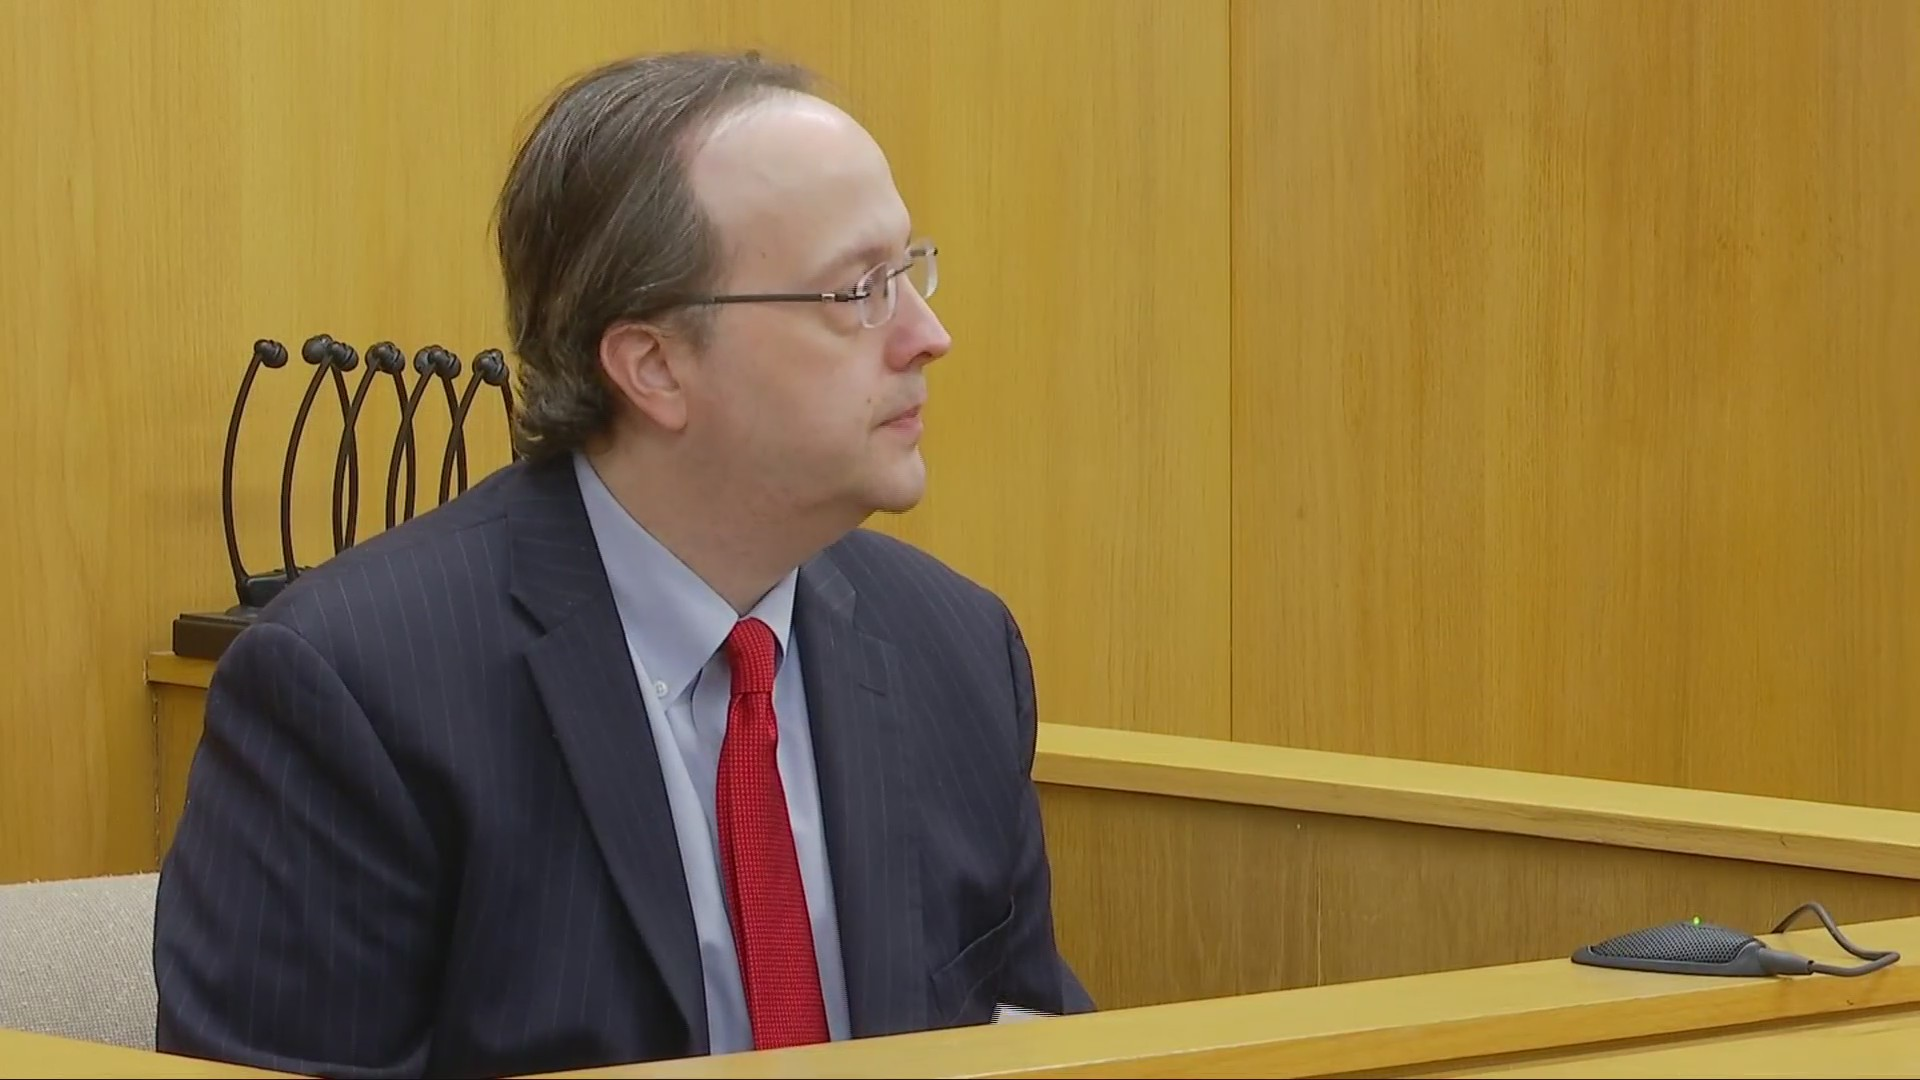 Ex WV Supreme Court Justice Allen Loughry in court, enters stipulation agreement